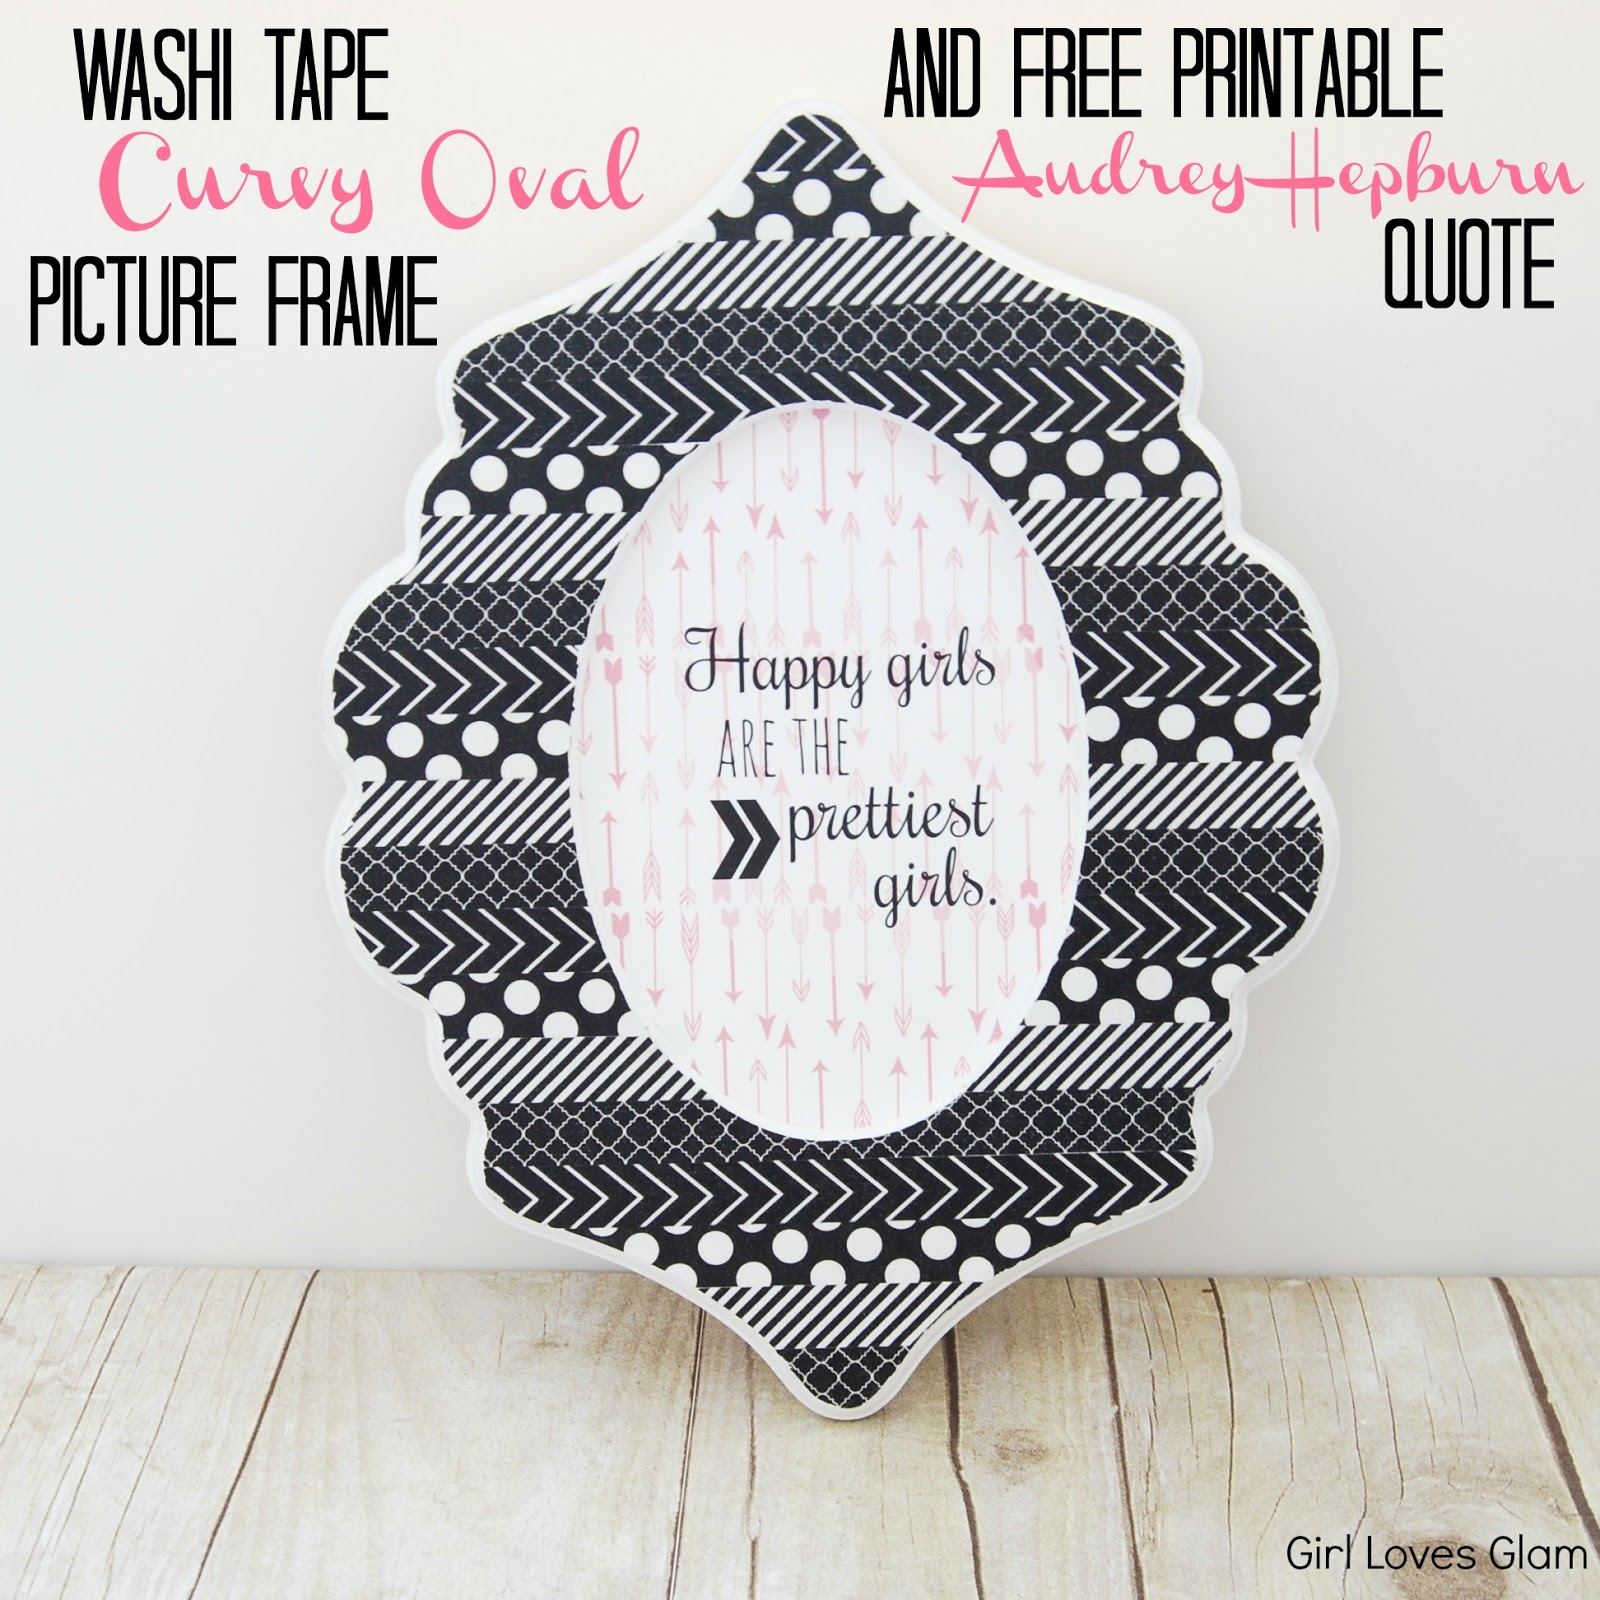 photograph relating to Printable Quotes to Frame identified as Do-it-yourself Washi Tape Curvy Oval Body and Audrey Hepburn Totally free